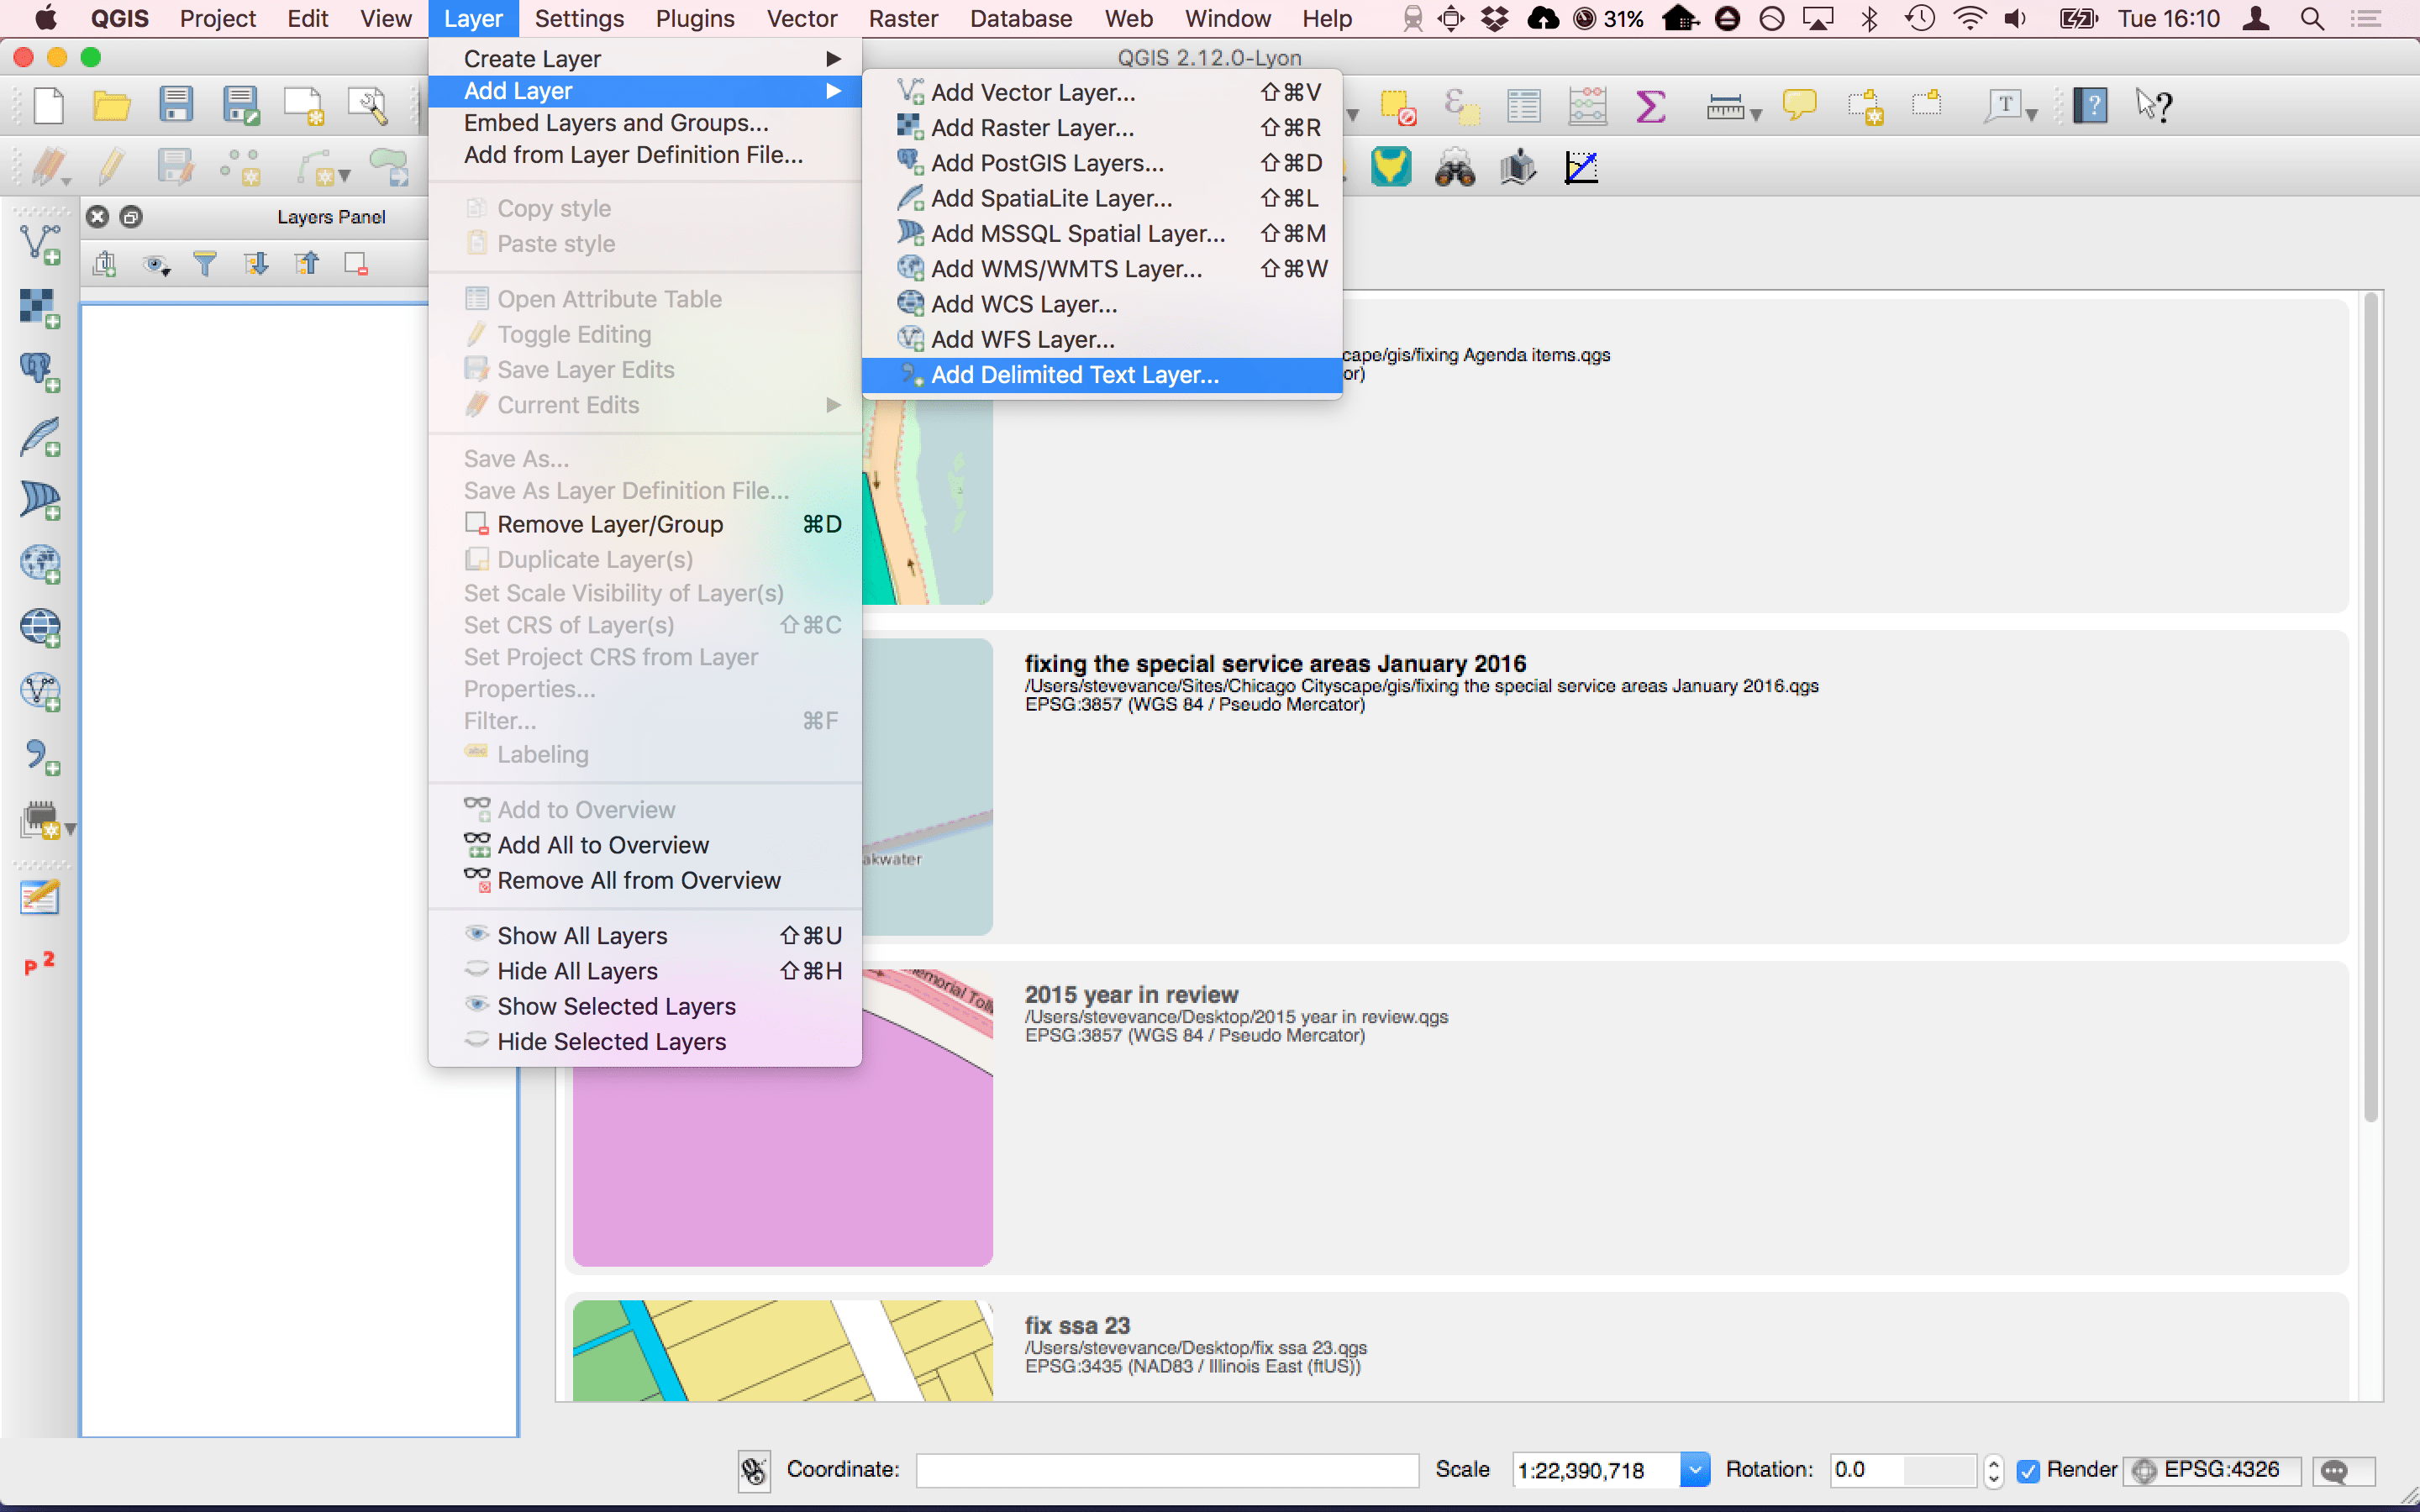 Converting a transit agency's GTFS to shapefile and GeoJSON